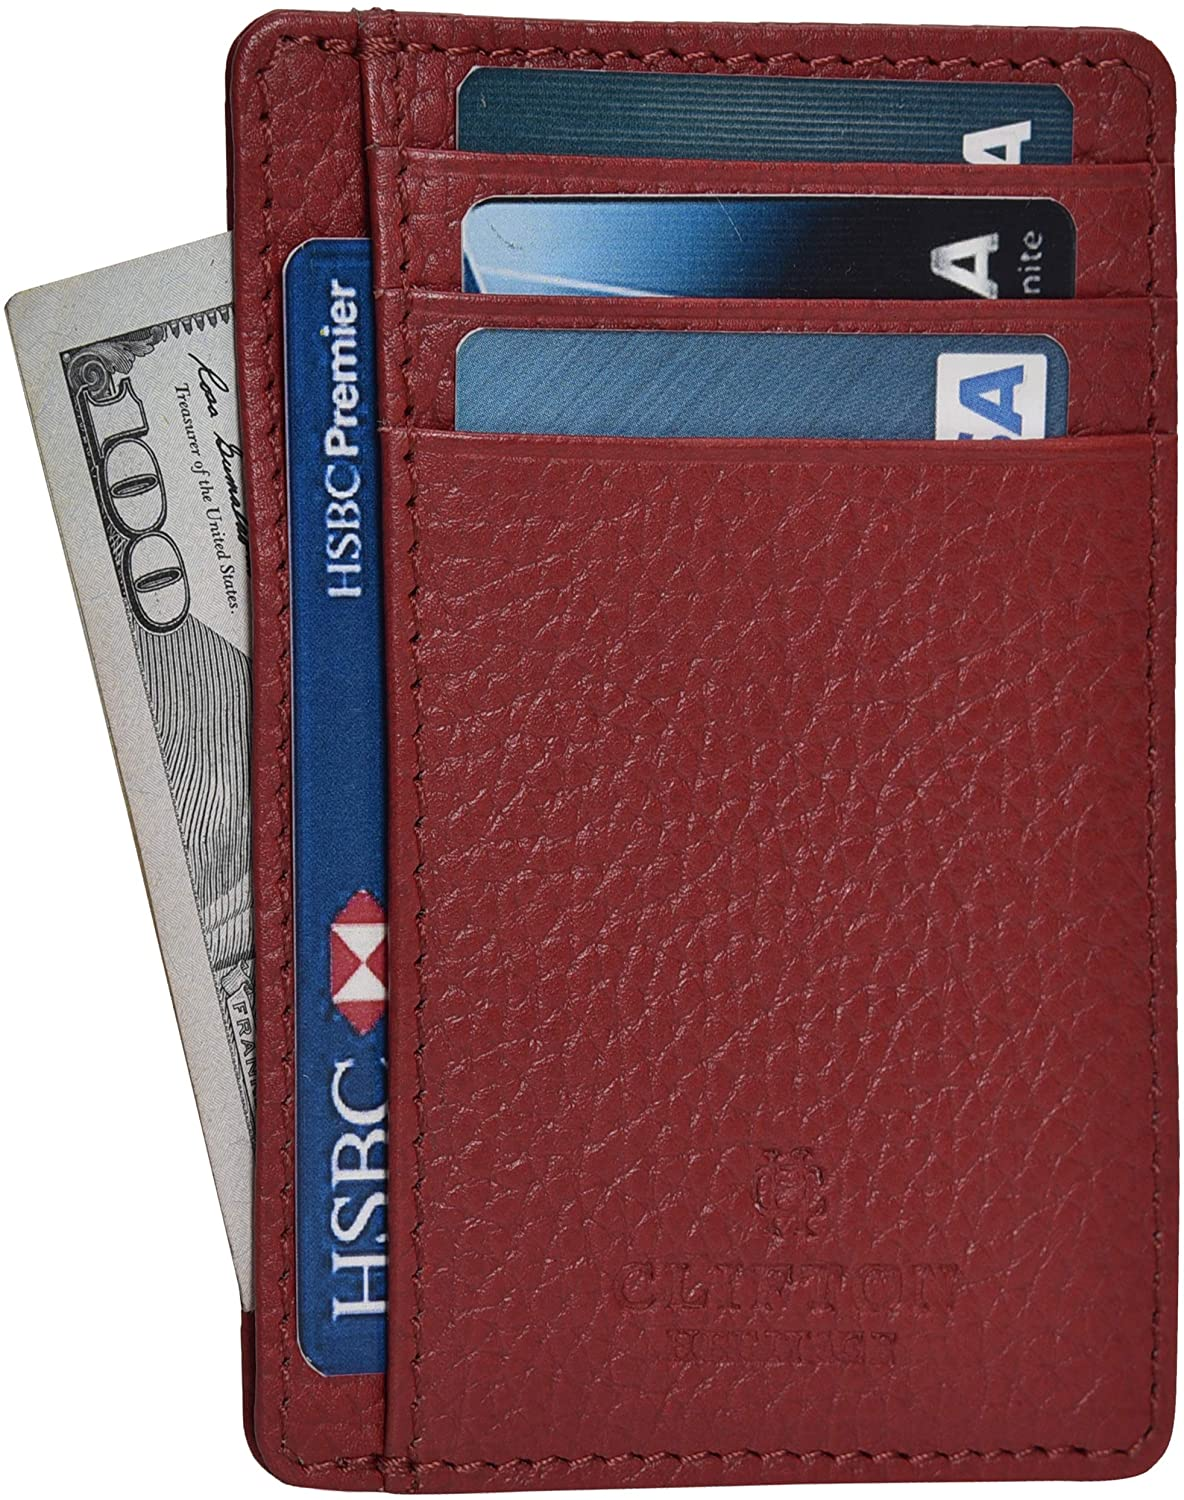 Classier: Buy Clifton Heritage Minimalist Wallets for Men & Women RFID Front Pocket Leather Card Holder Wallet